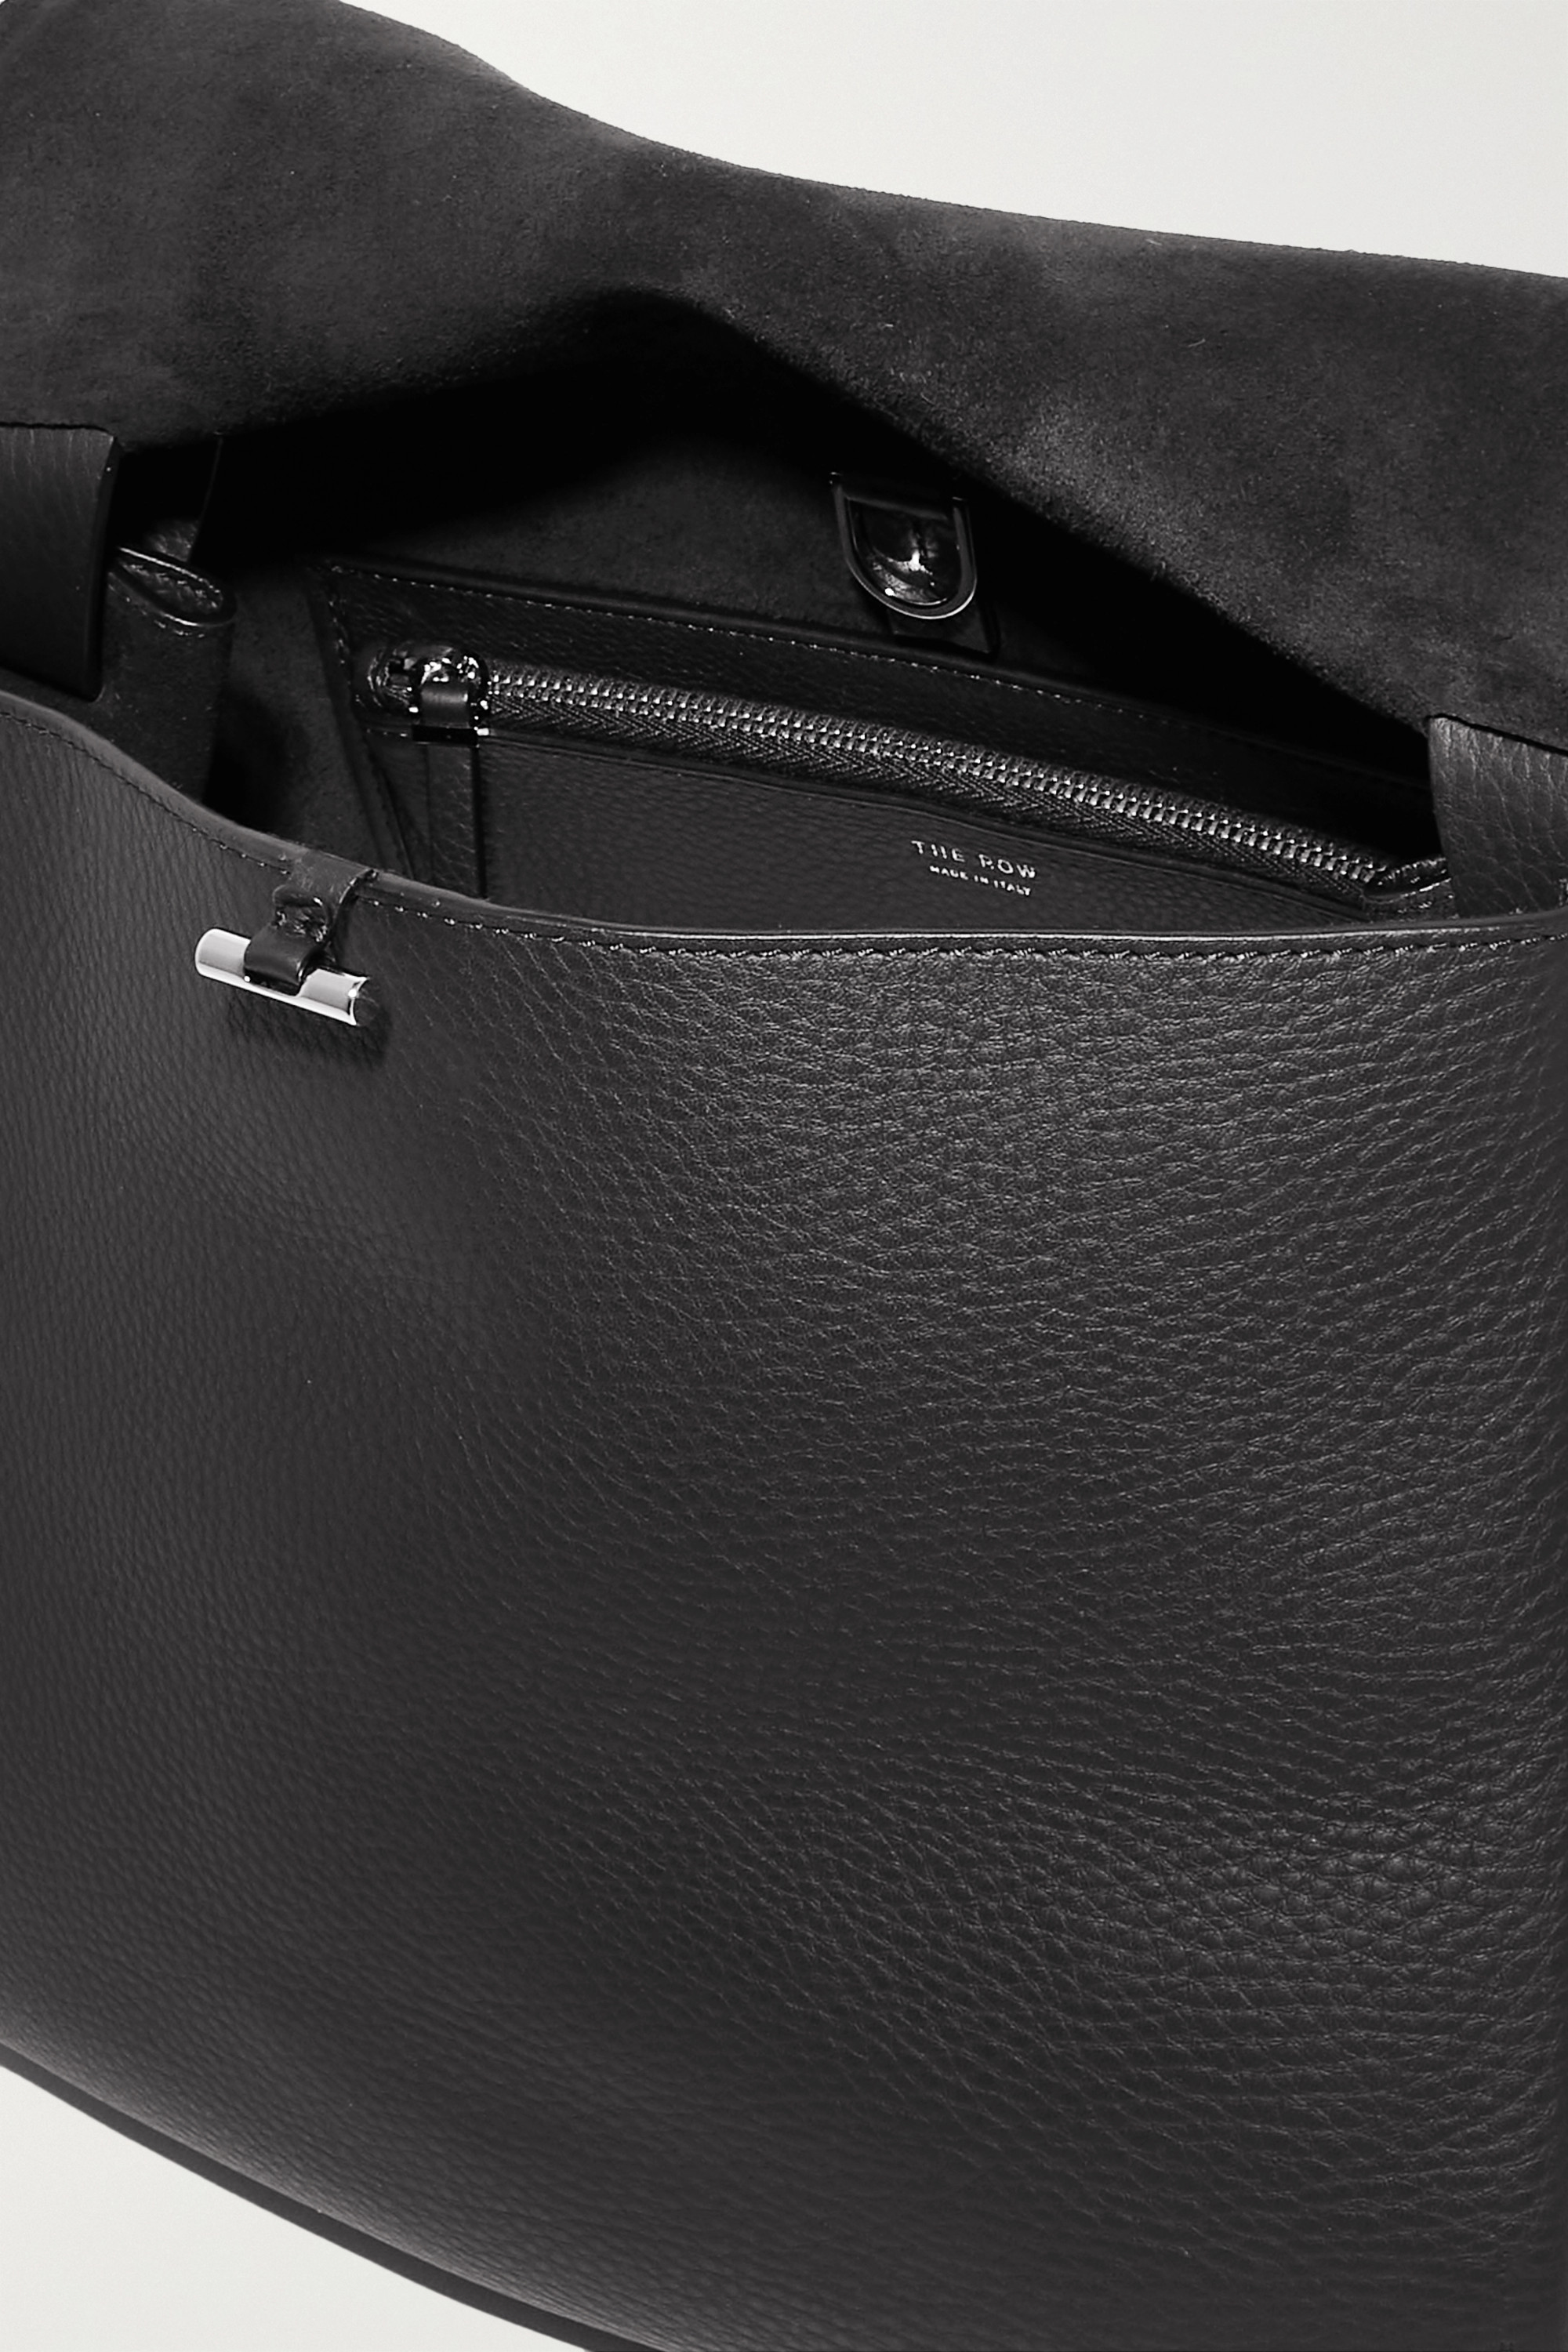 The Row Mail textured-leather shoulder bag